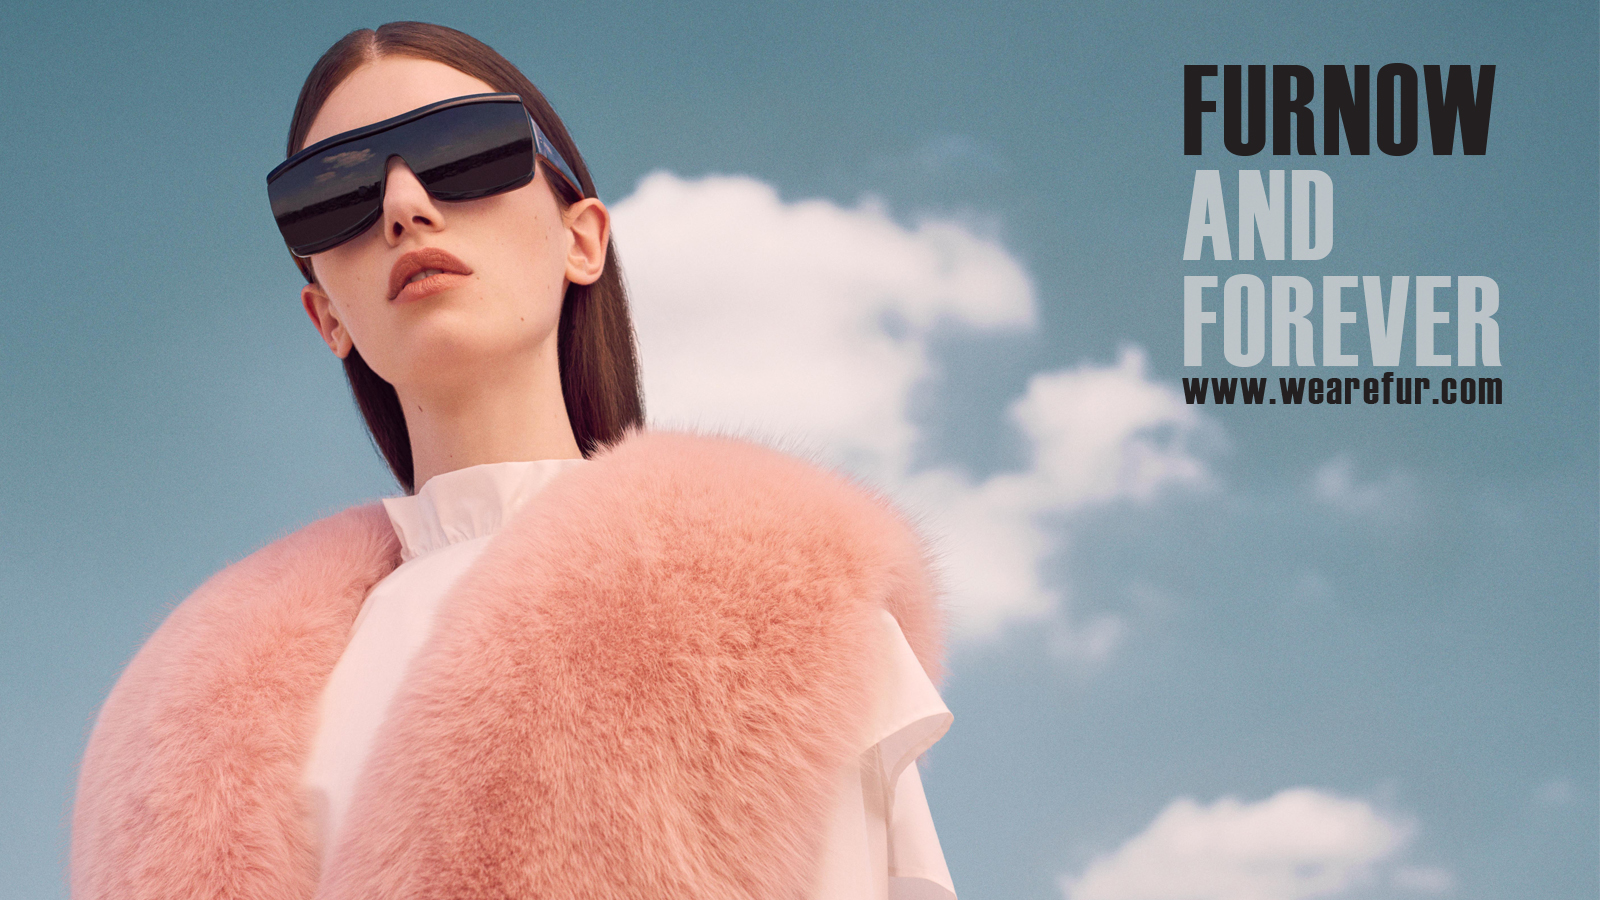 Fur Now and Forever